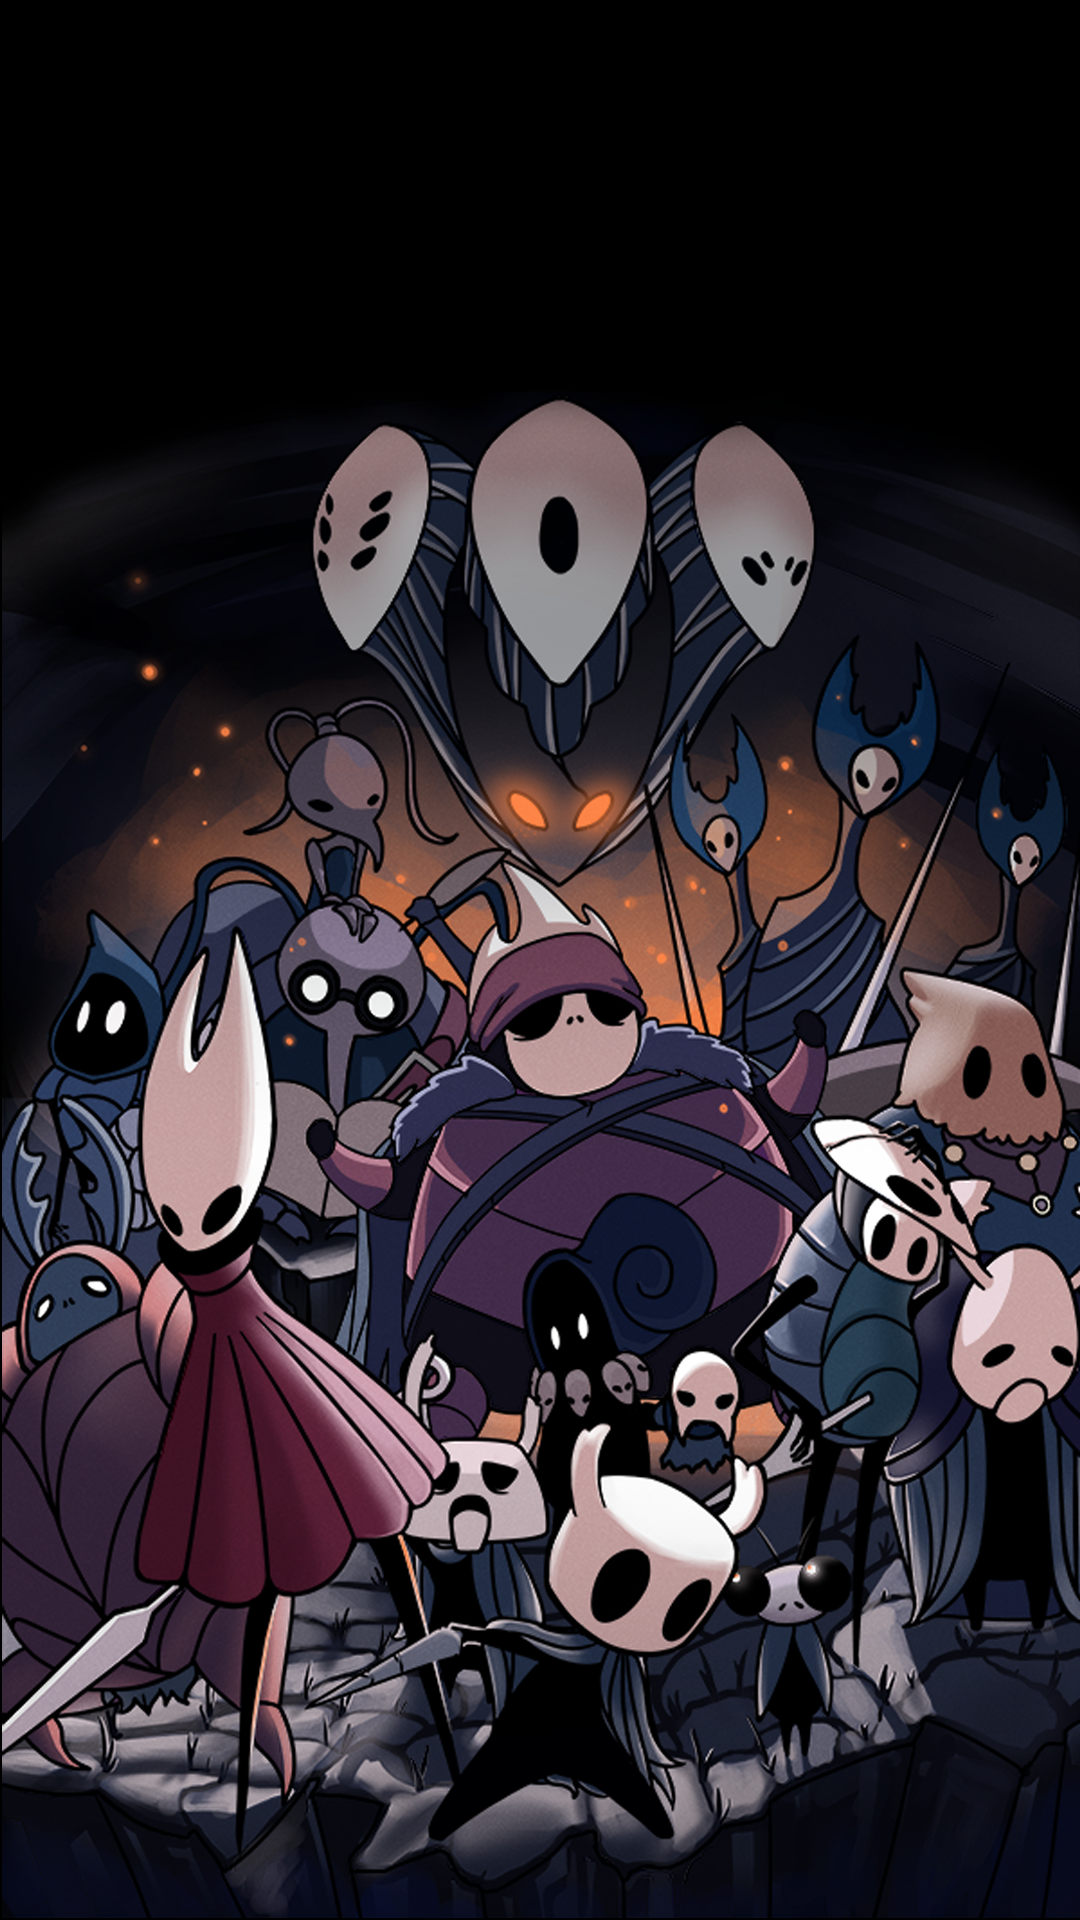 Hollow Knight Characters (Makes a good phone background